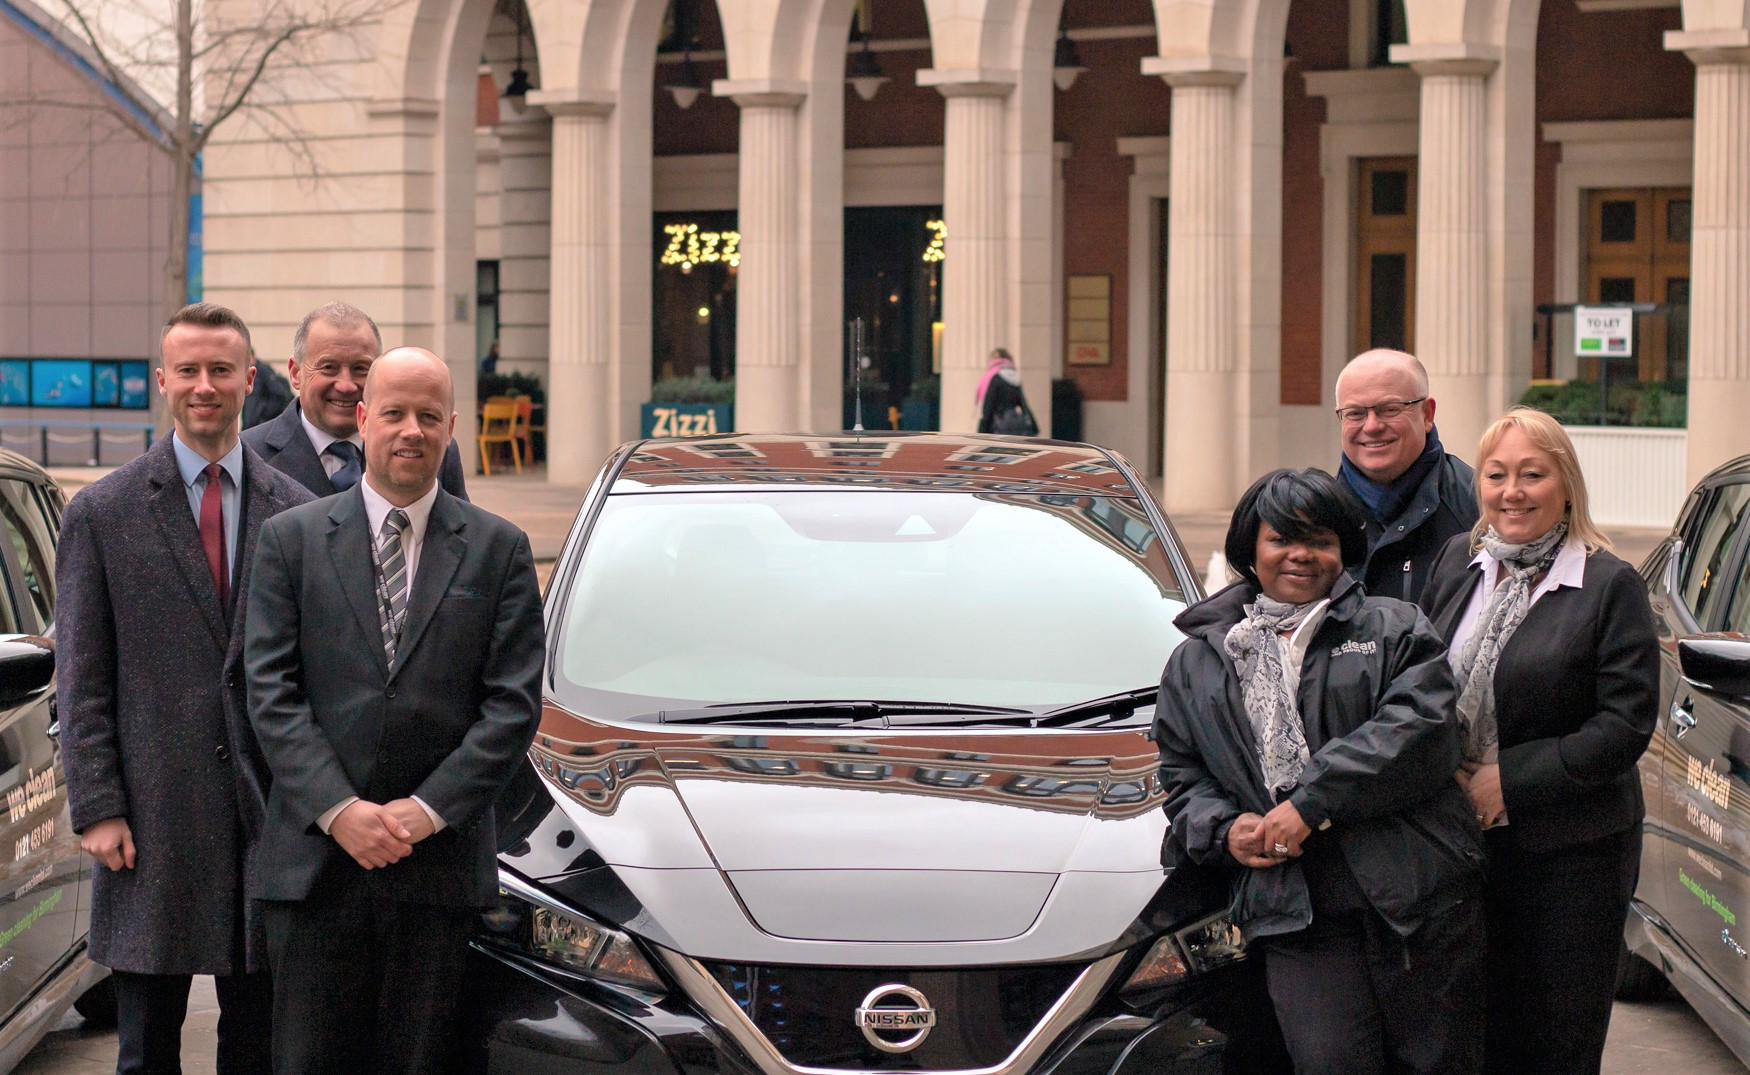 Directors-and-staff-of-We-Clean-at-Brindleyplace Cleaning Green - Birmingham Cleaning Company Goes Electric